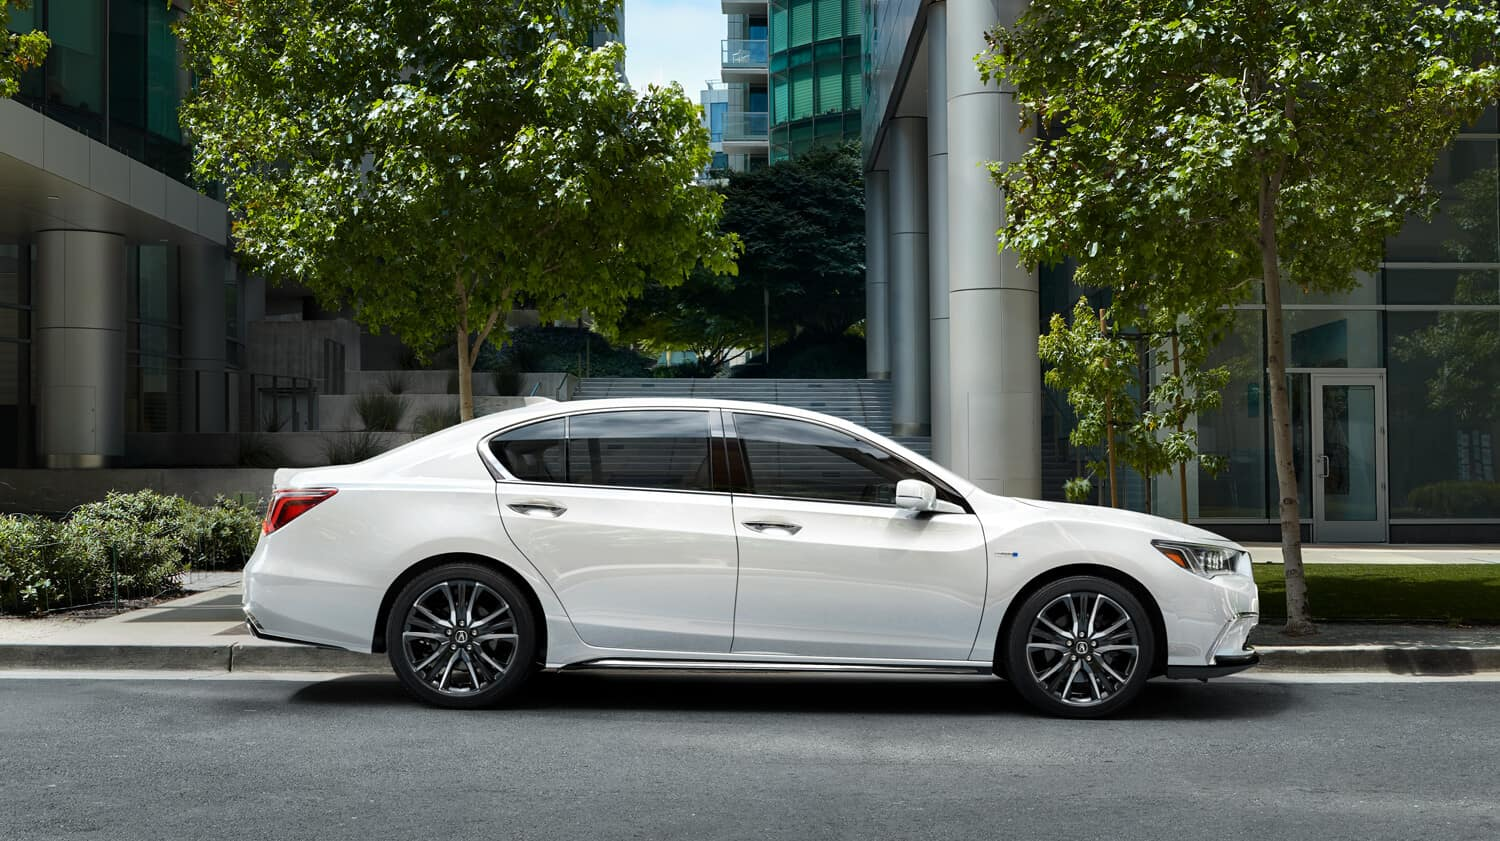 2020 Acura RLX Exterior Side Profile